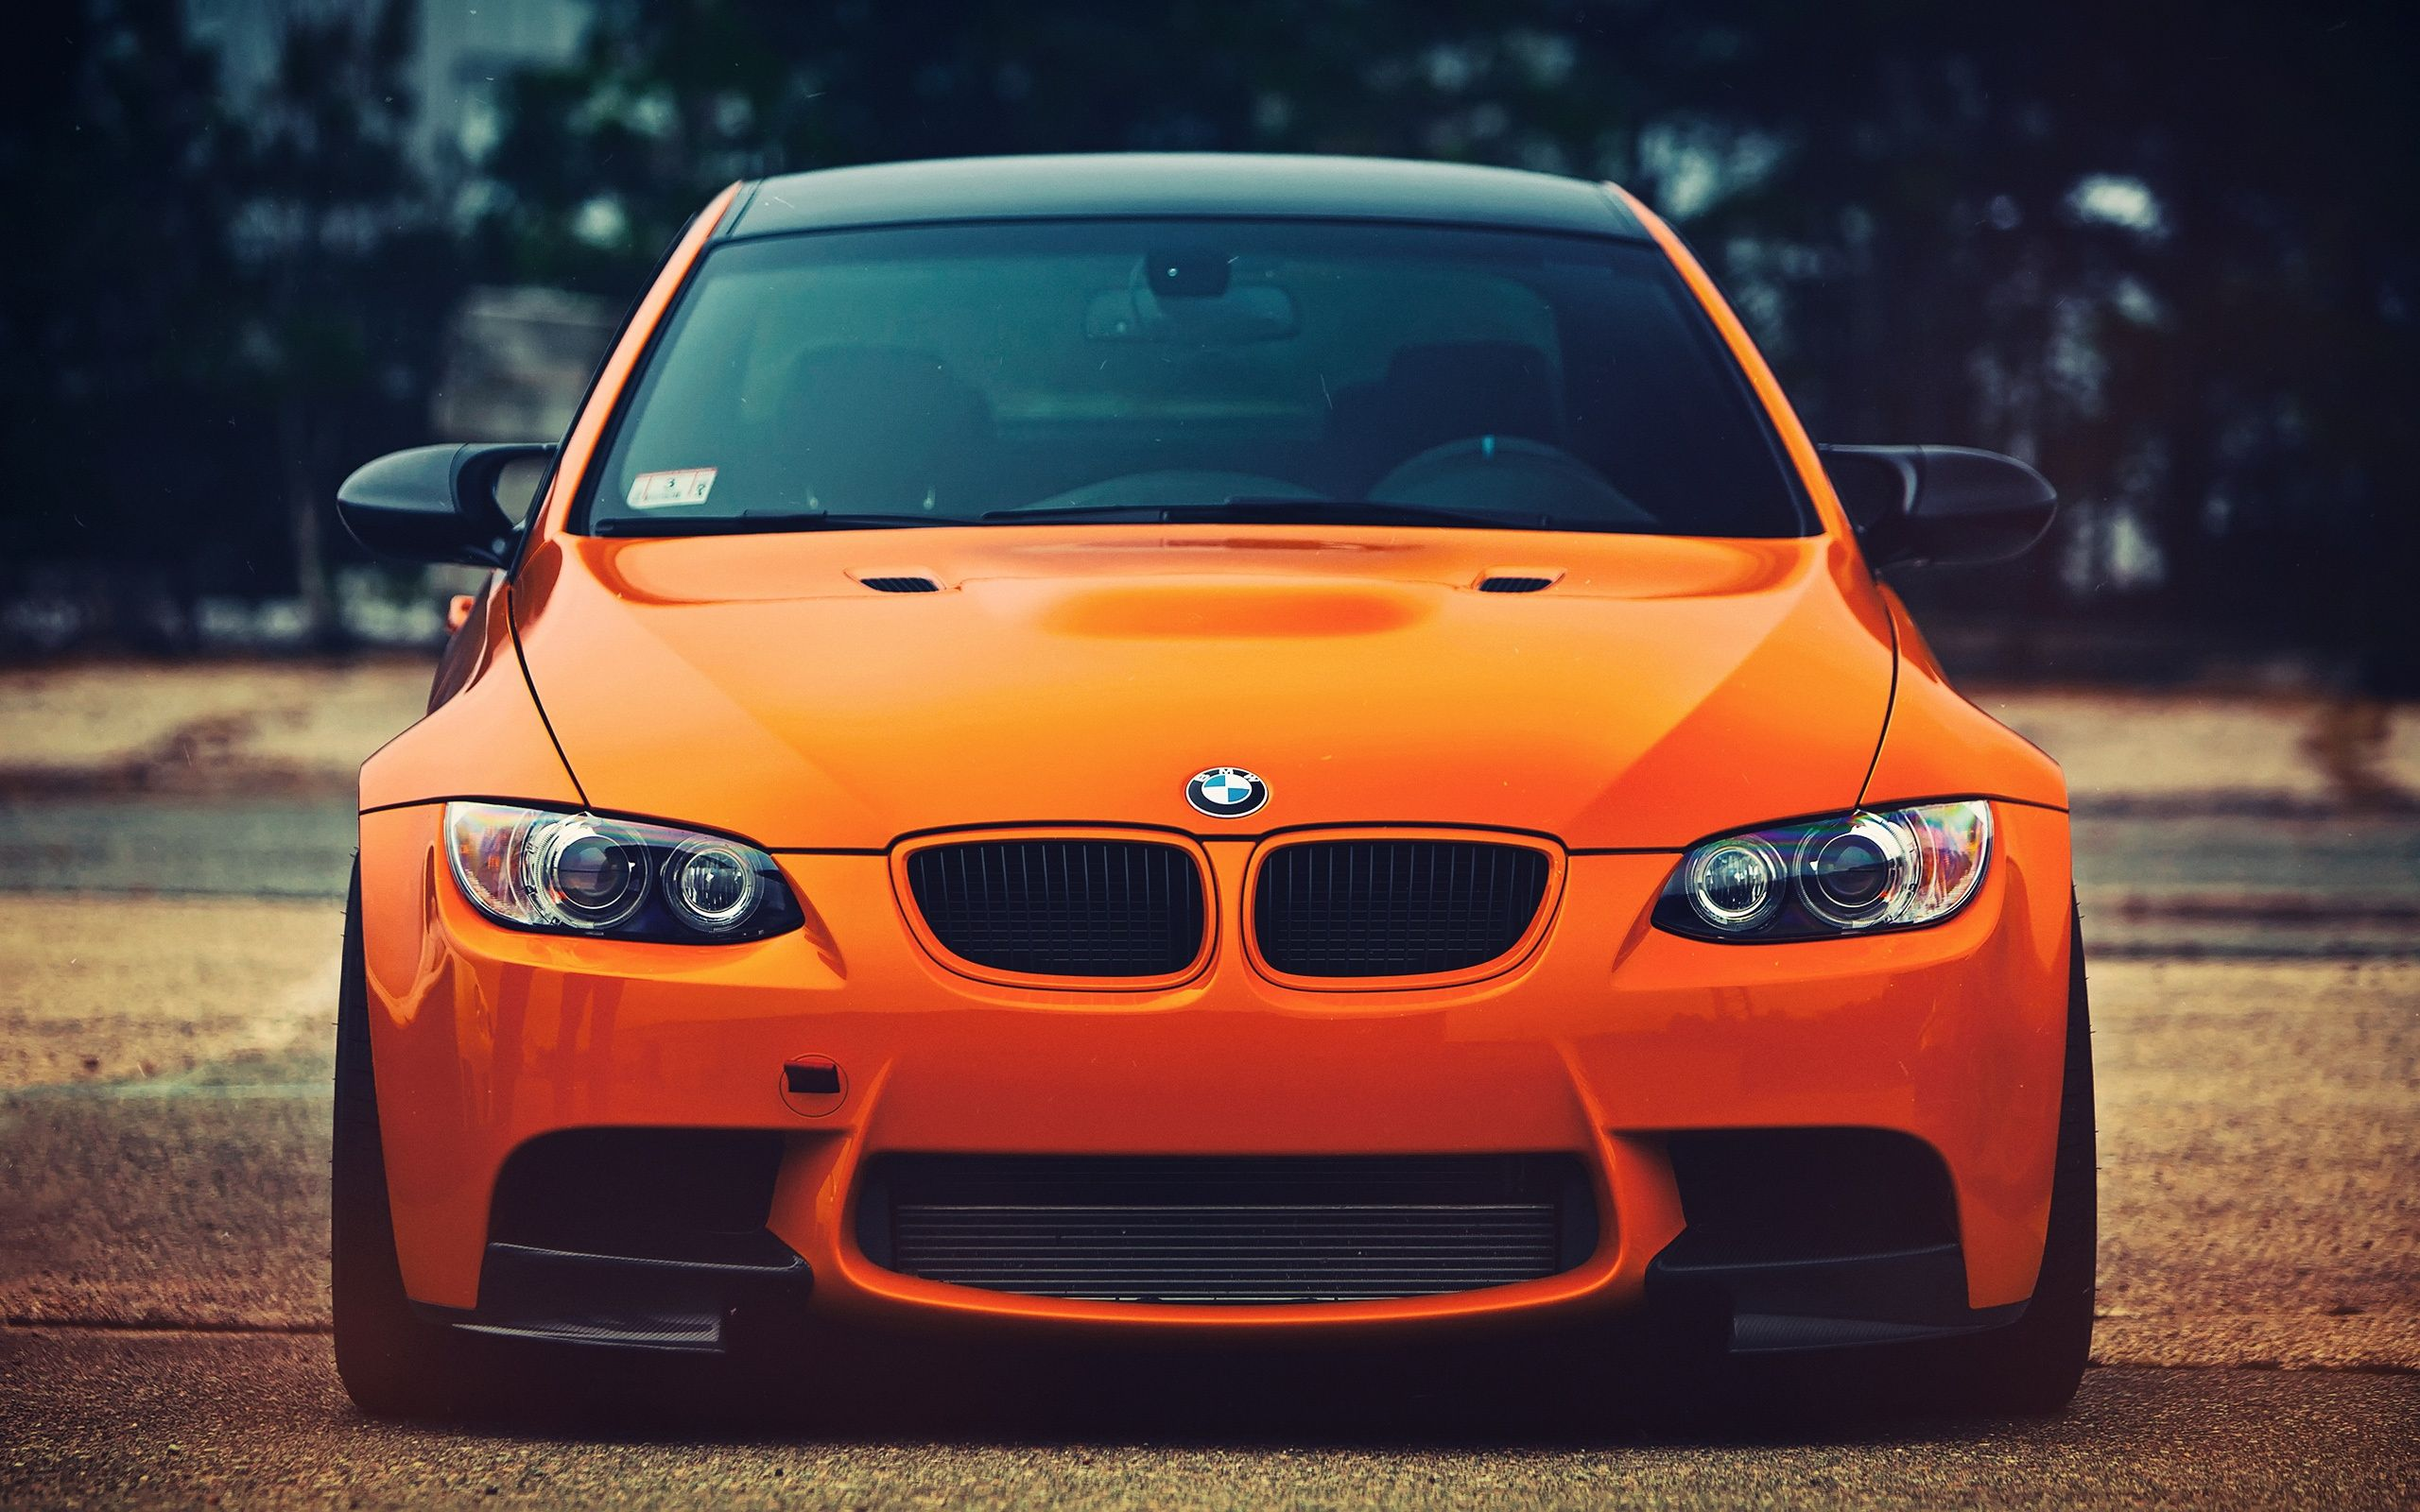 medium resolution of bmw m3 orange car front view wallpapers hd desktop wallpaper